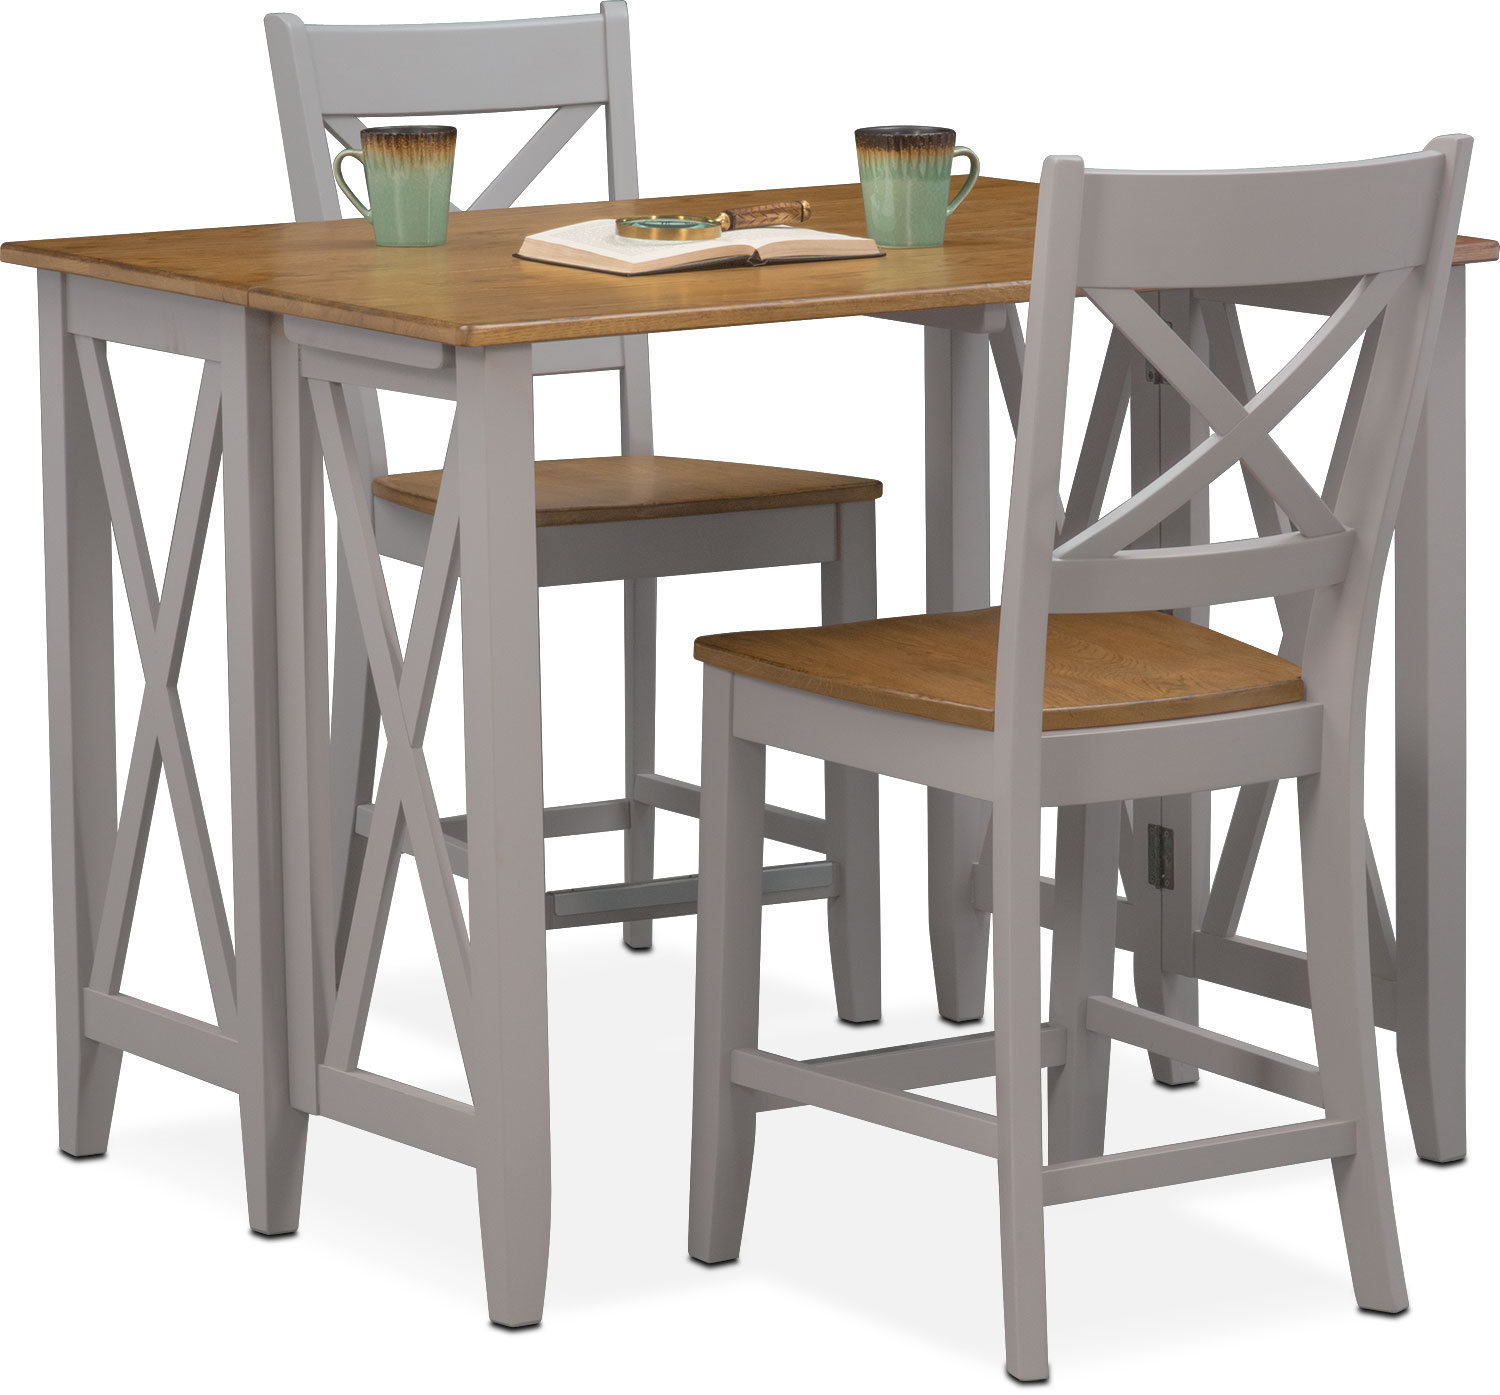 Nantucket Breakfast Bar And 2 Counter Height Side Chairs   Oak And Gray